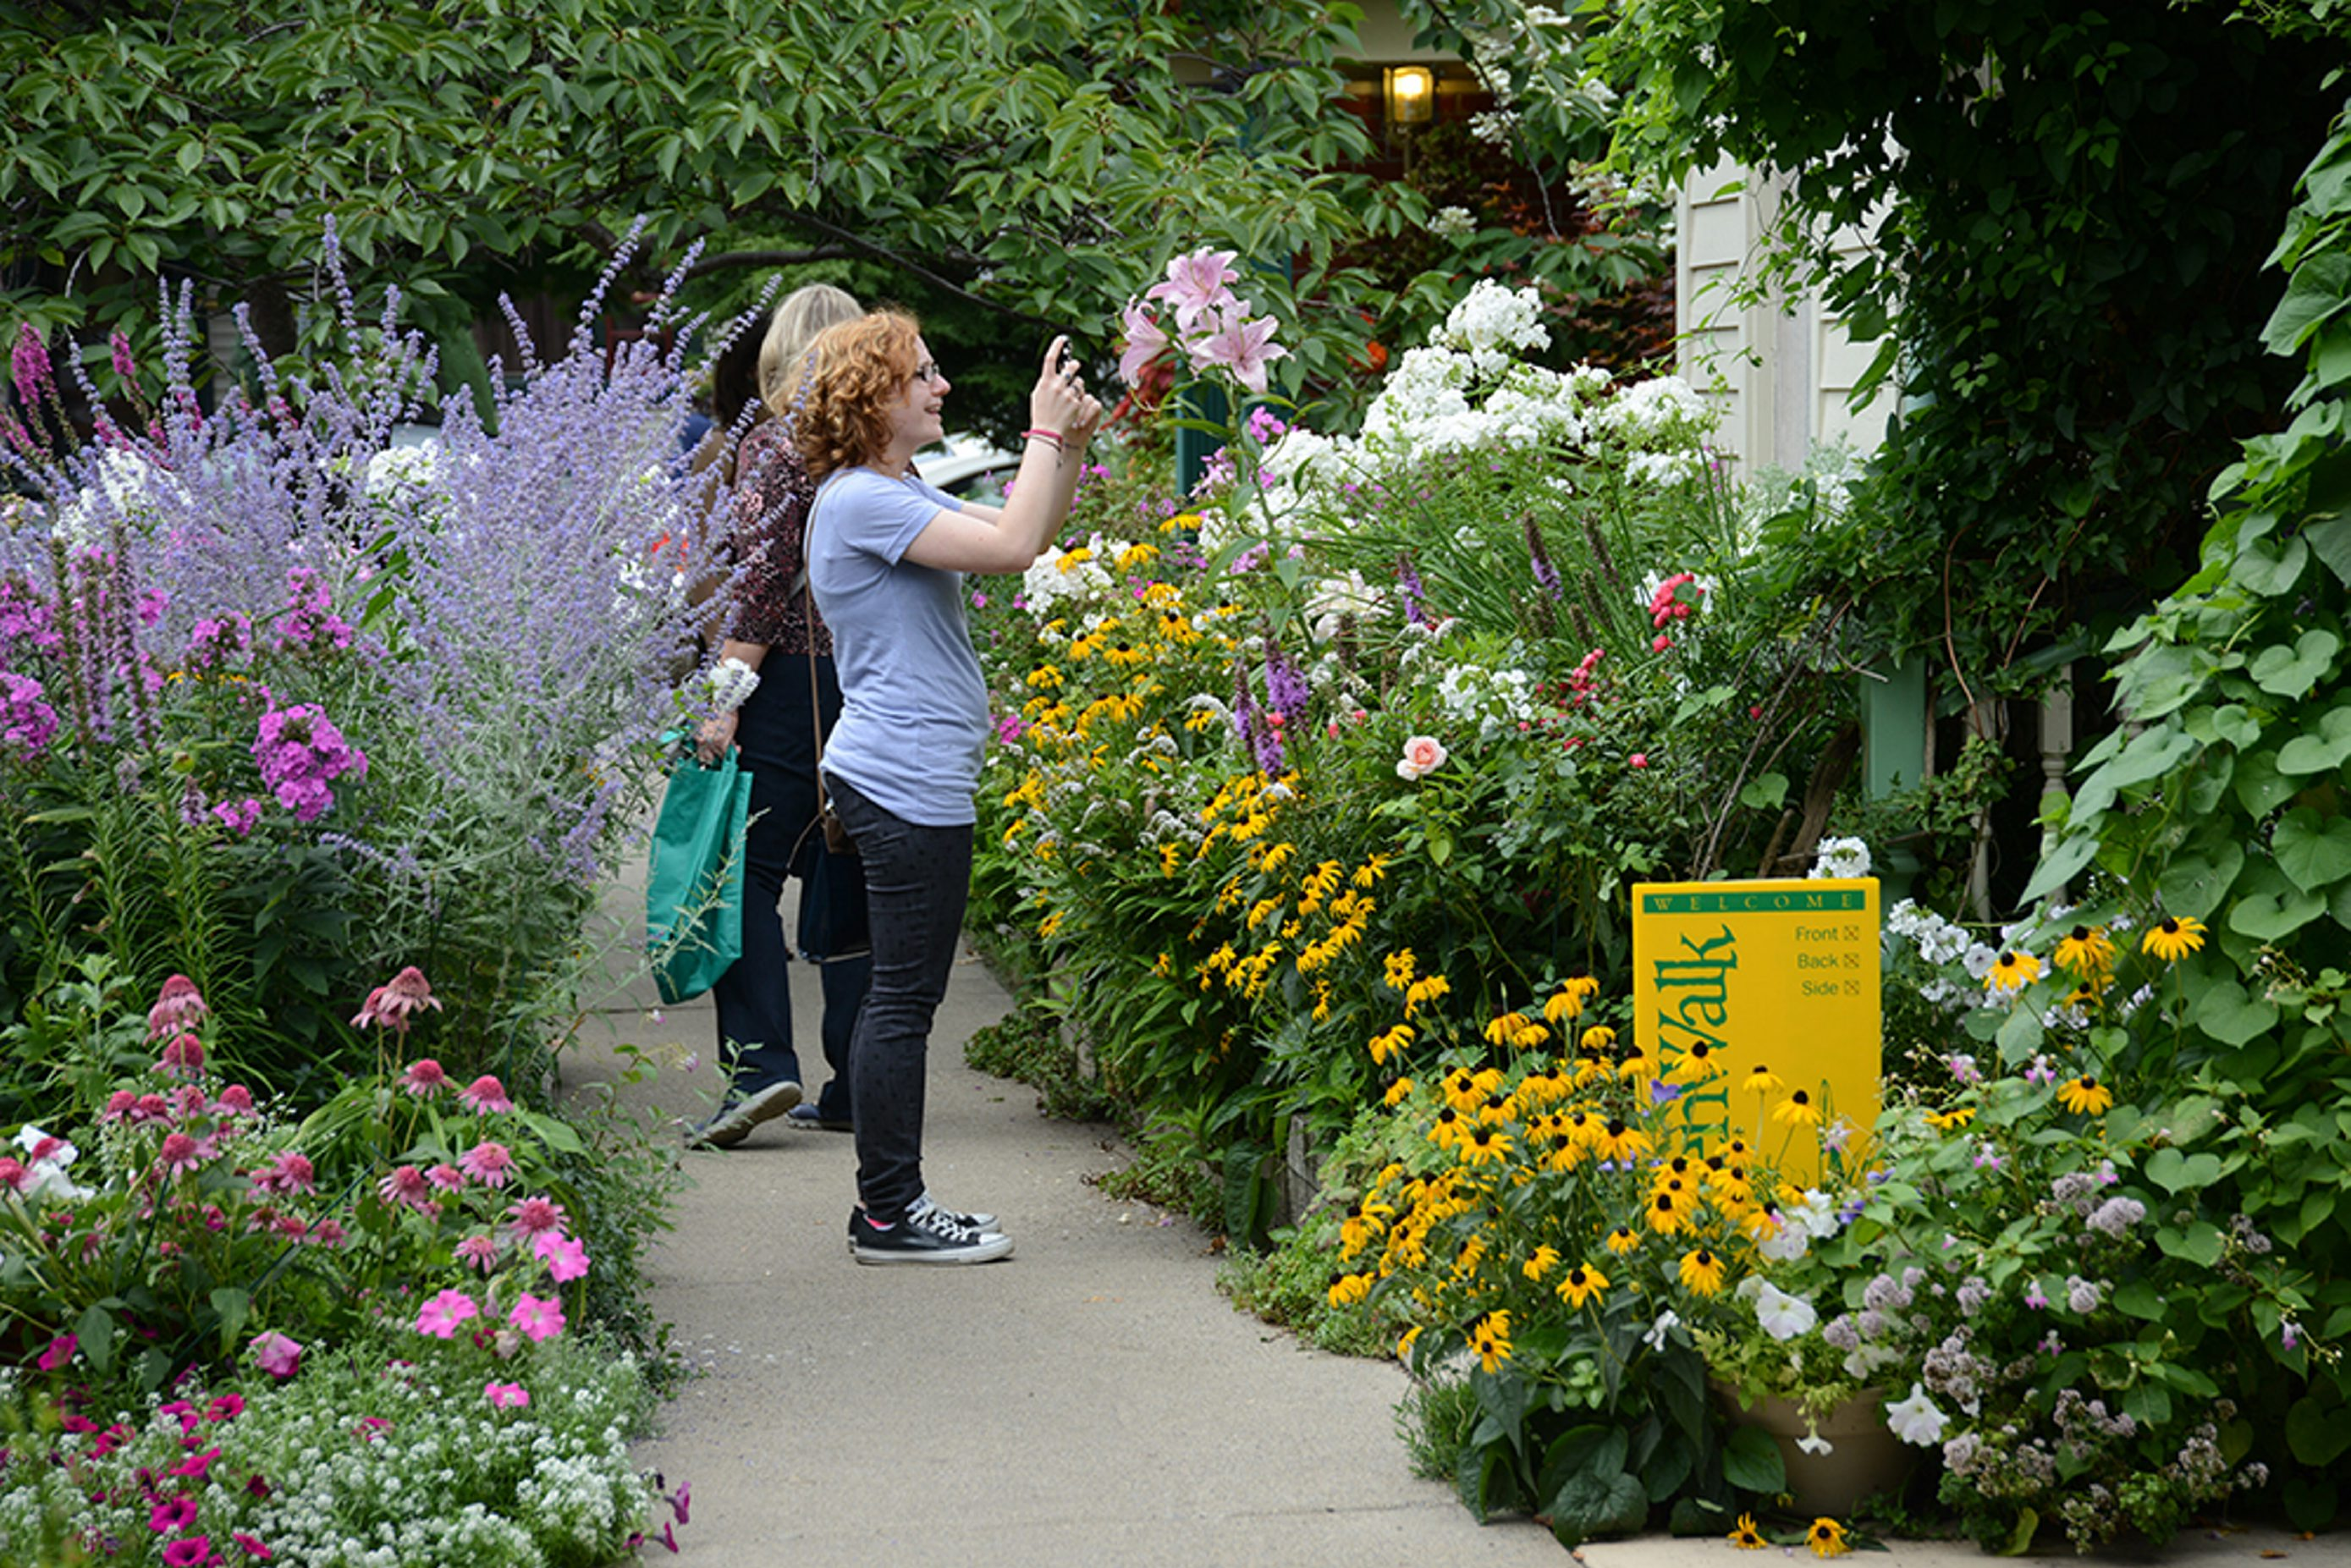 National Garden Festival Runs from June 21 to Aug. 2 in Buffalo